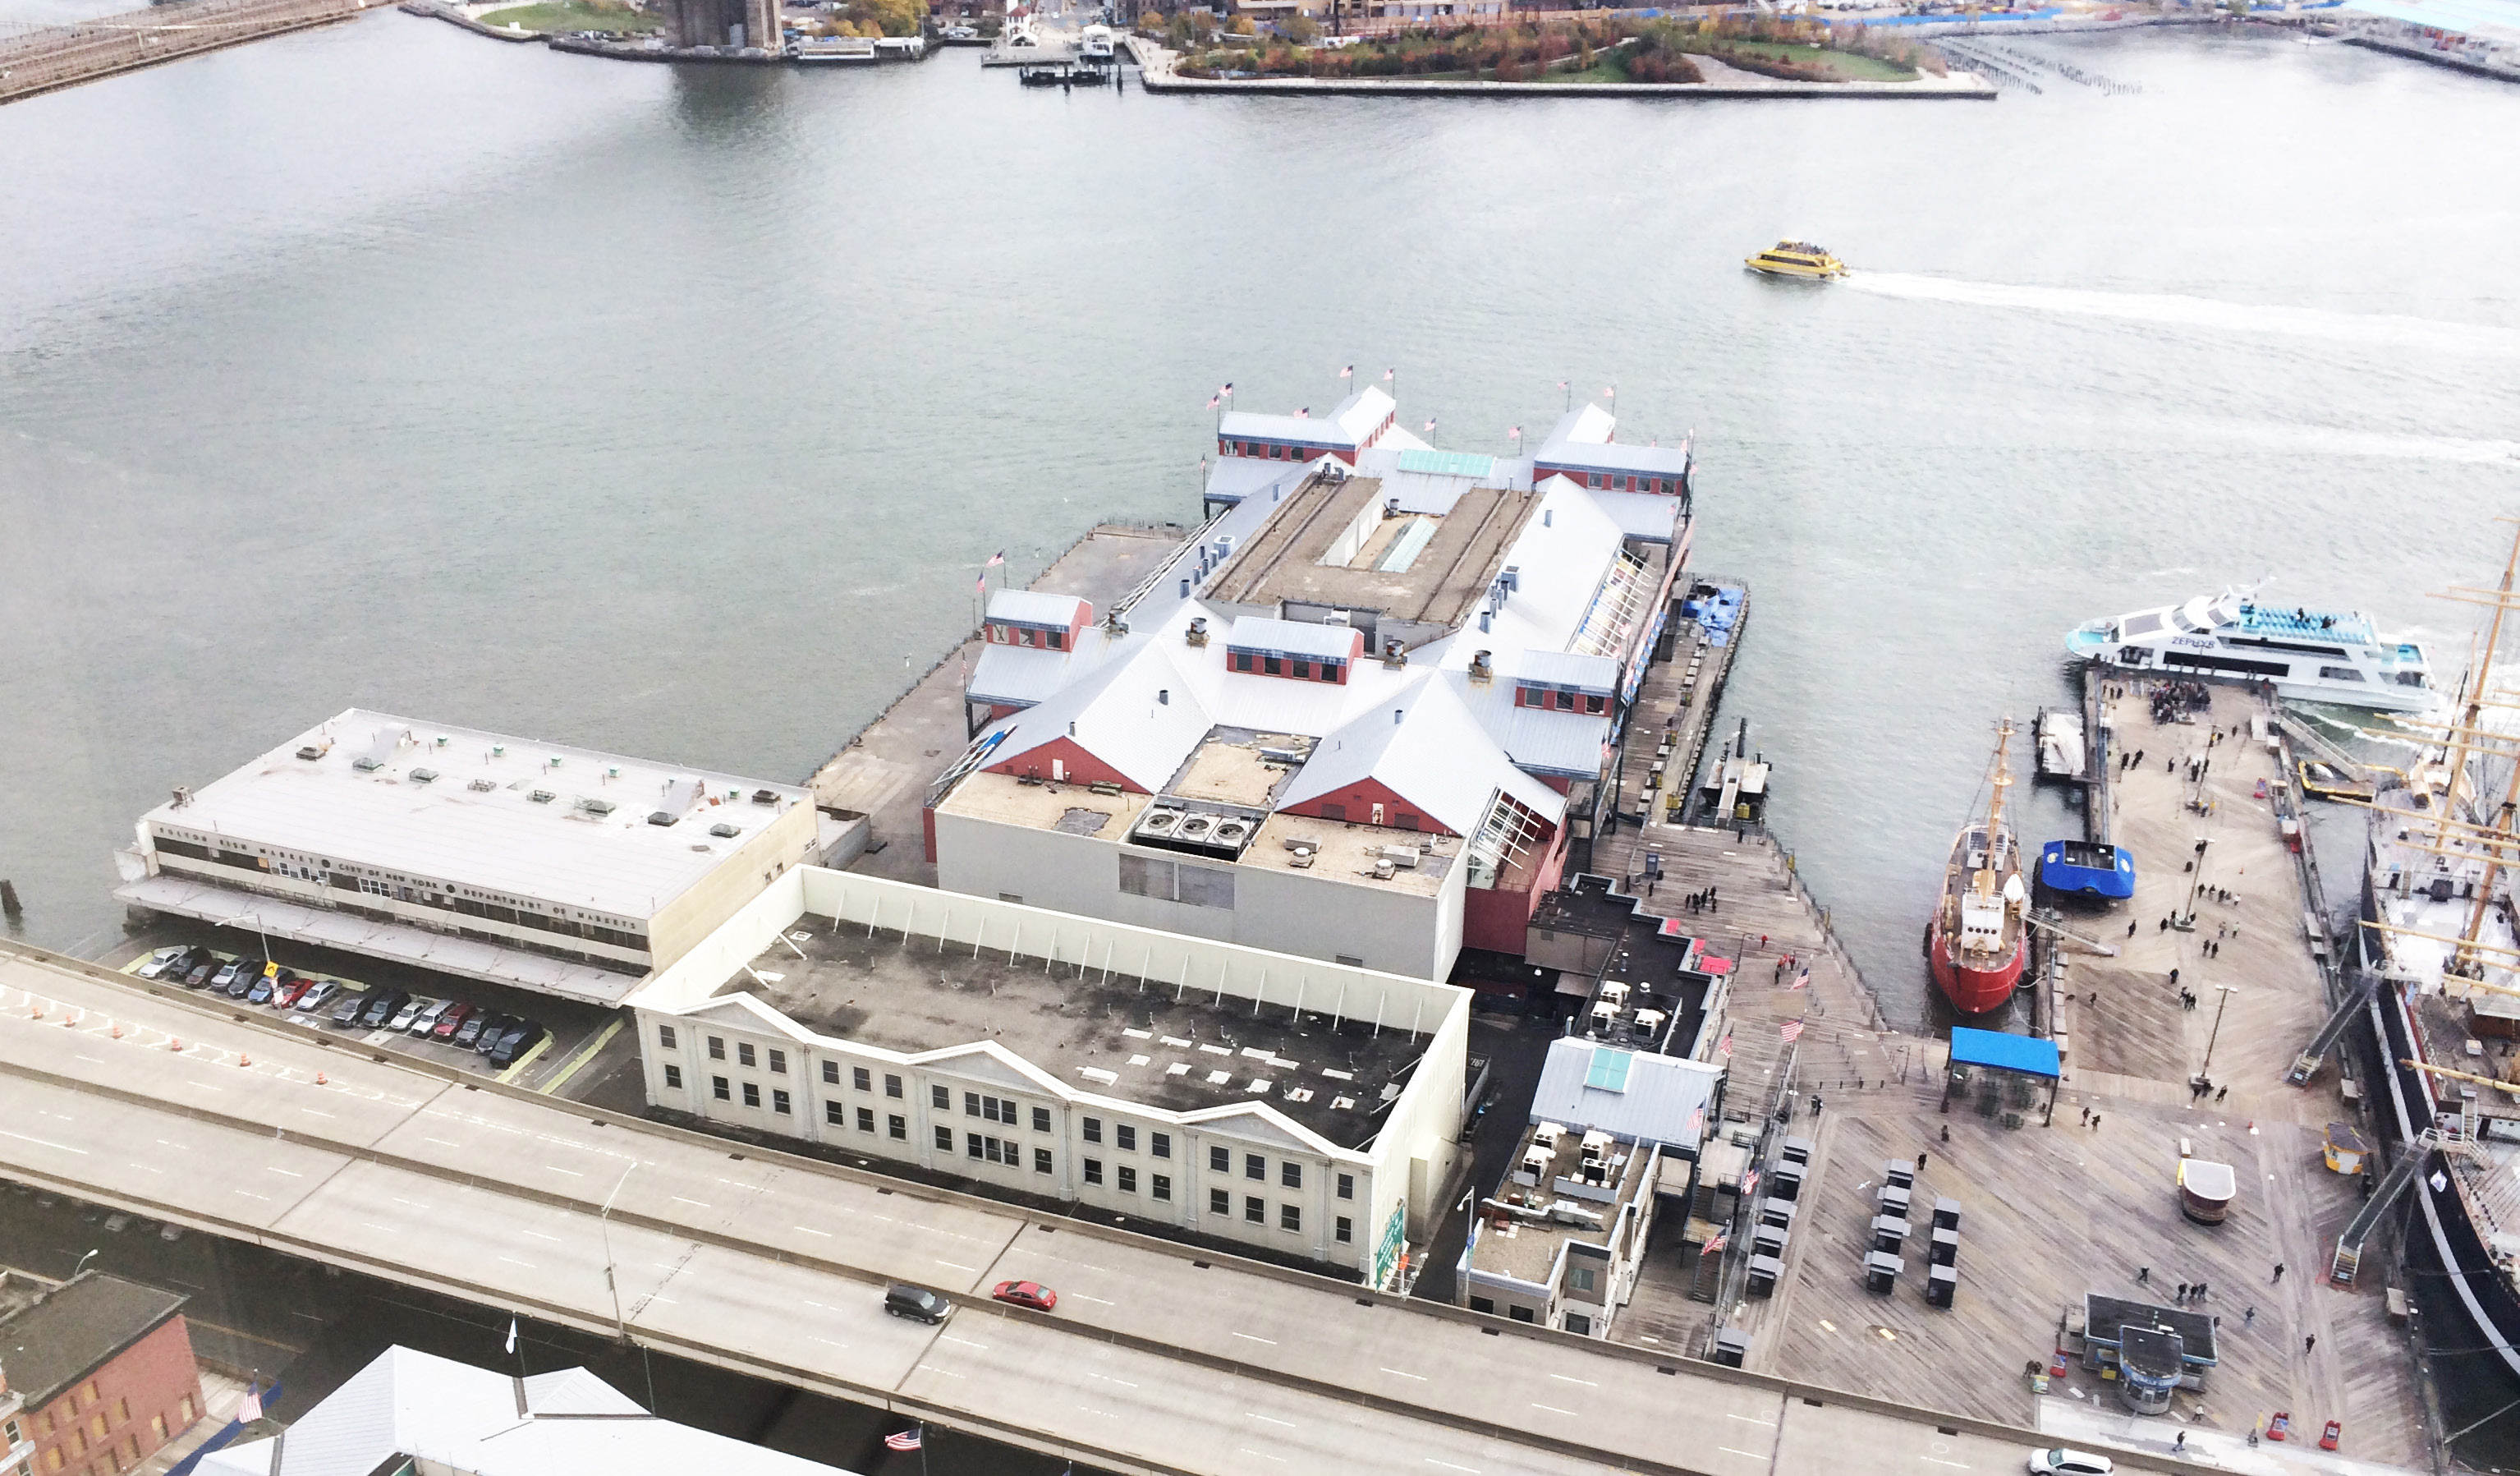 Pier 17, connected to its headhouse and the Link Building, in October of 2012. Also visible are the Tin Building and New Market Building. Photo via Howard Hughes Corporation